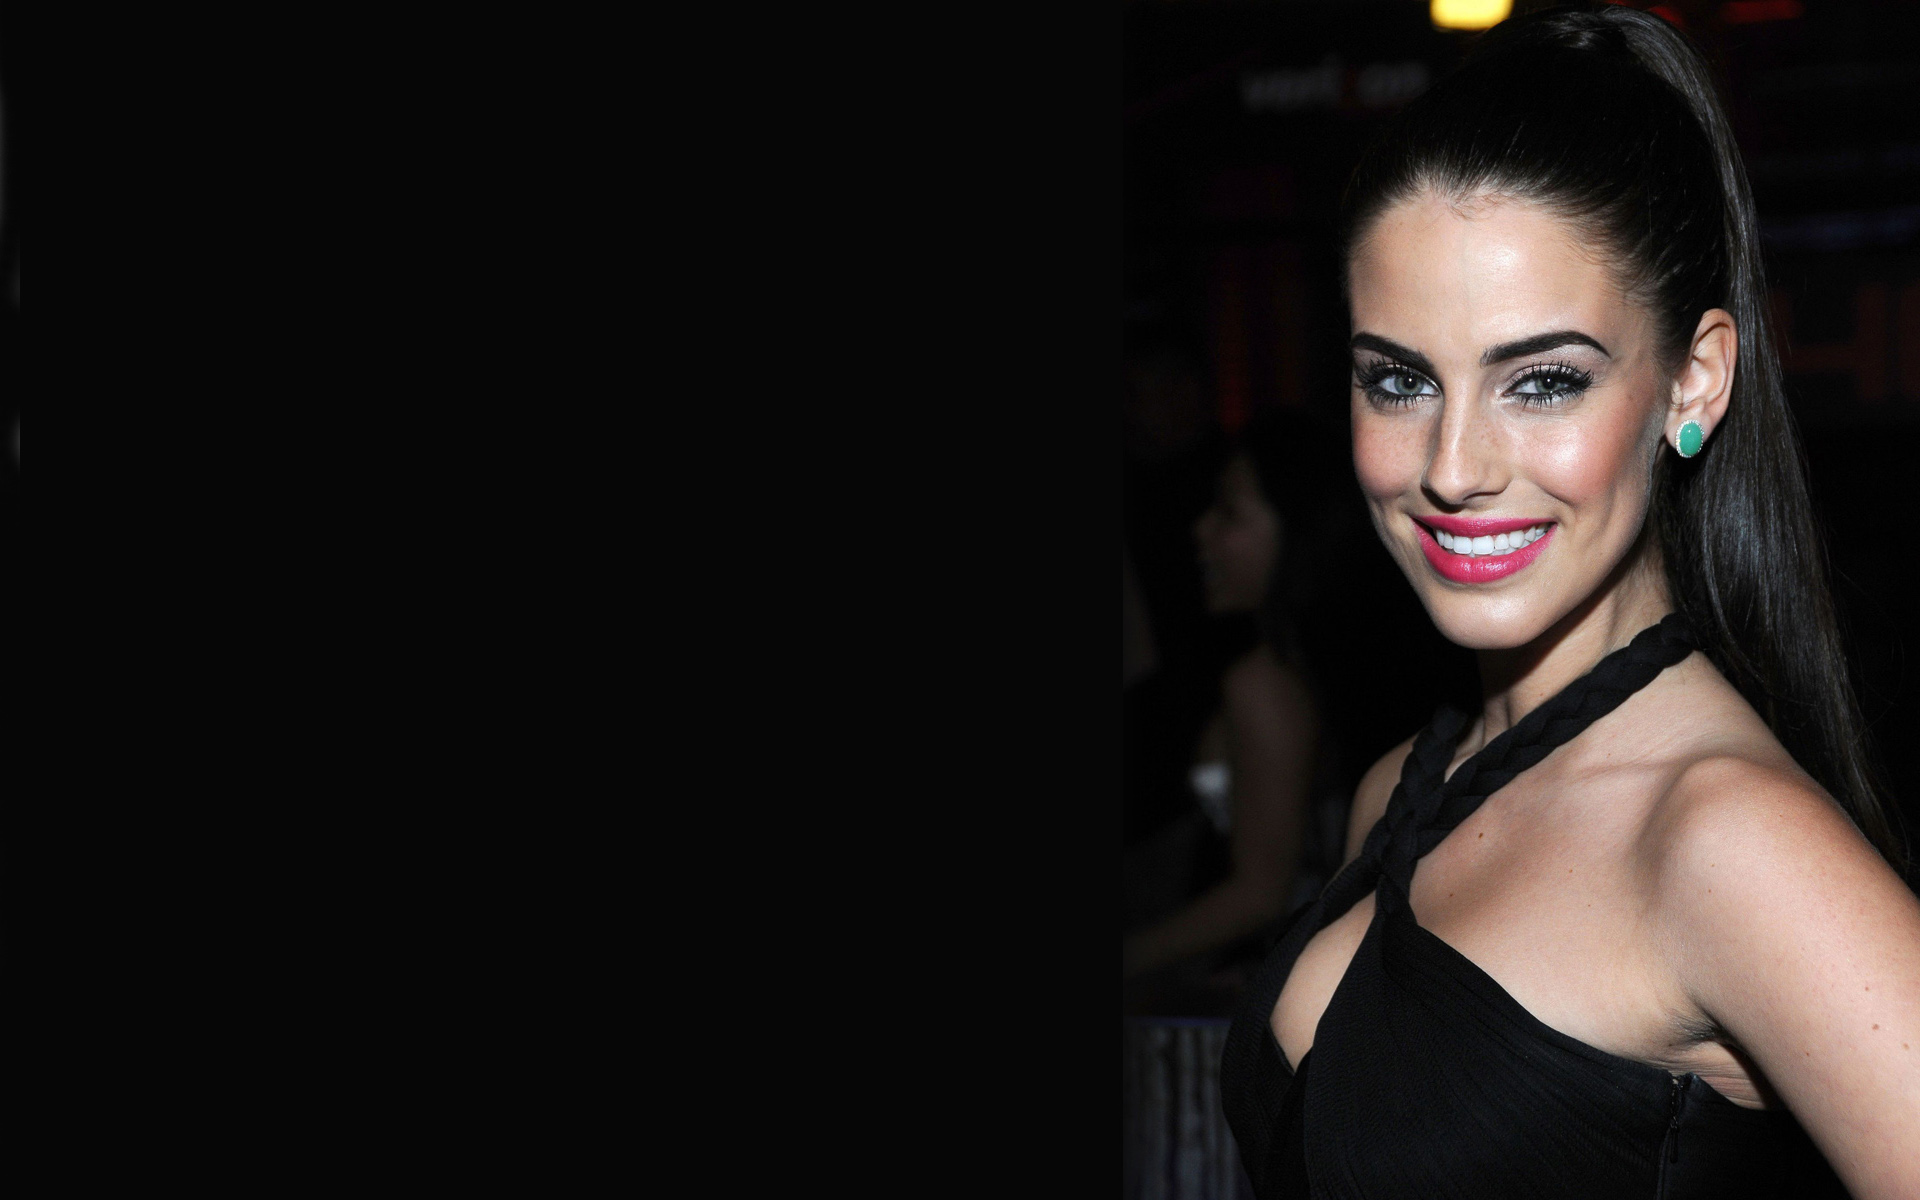 jessica lowndes actress wallpaper 51133